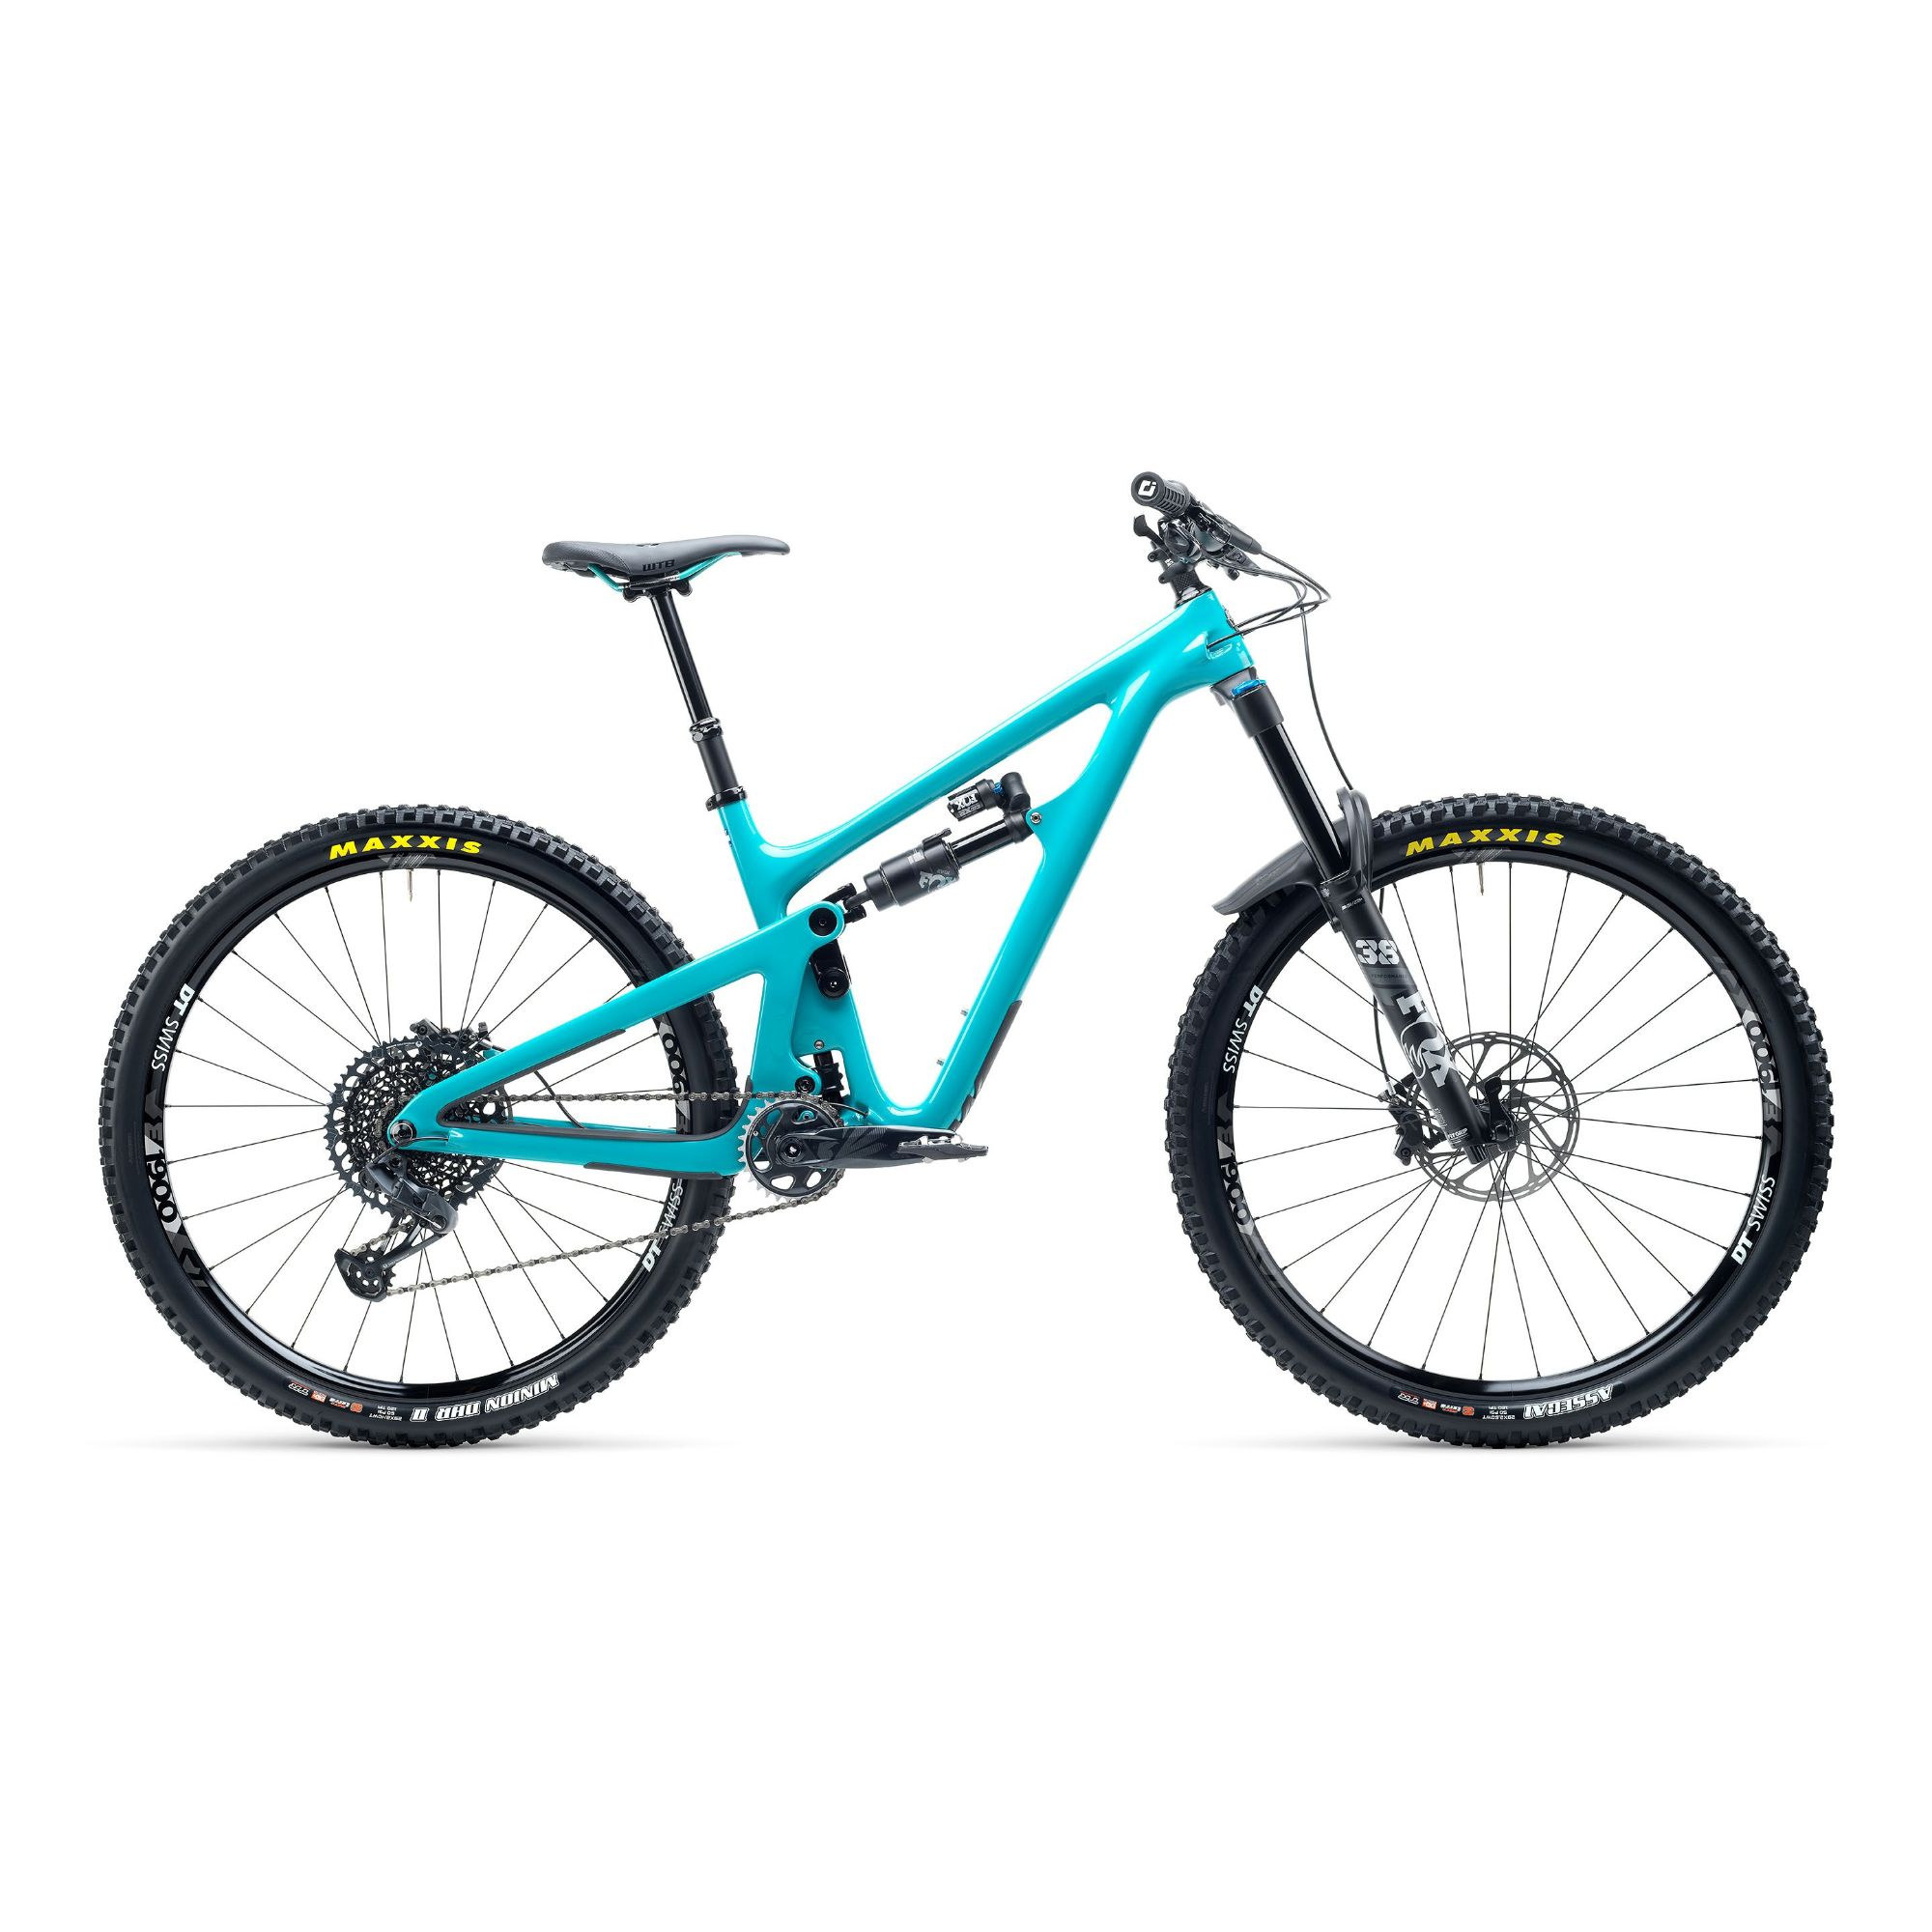 Yeti SB150 C series C2 29ER GX Carbon Mountain Bike 2021 Turquoise